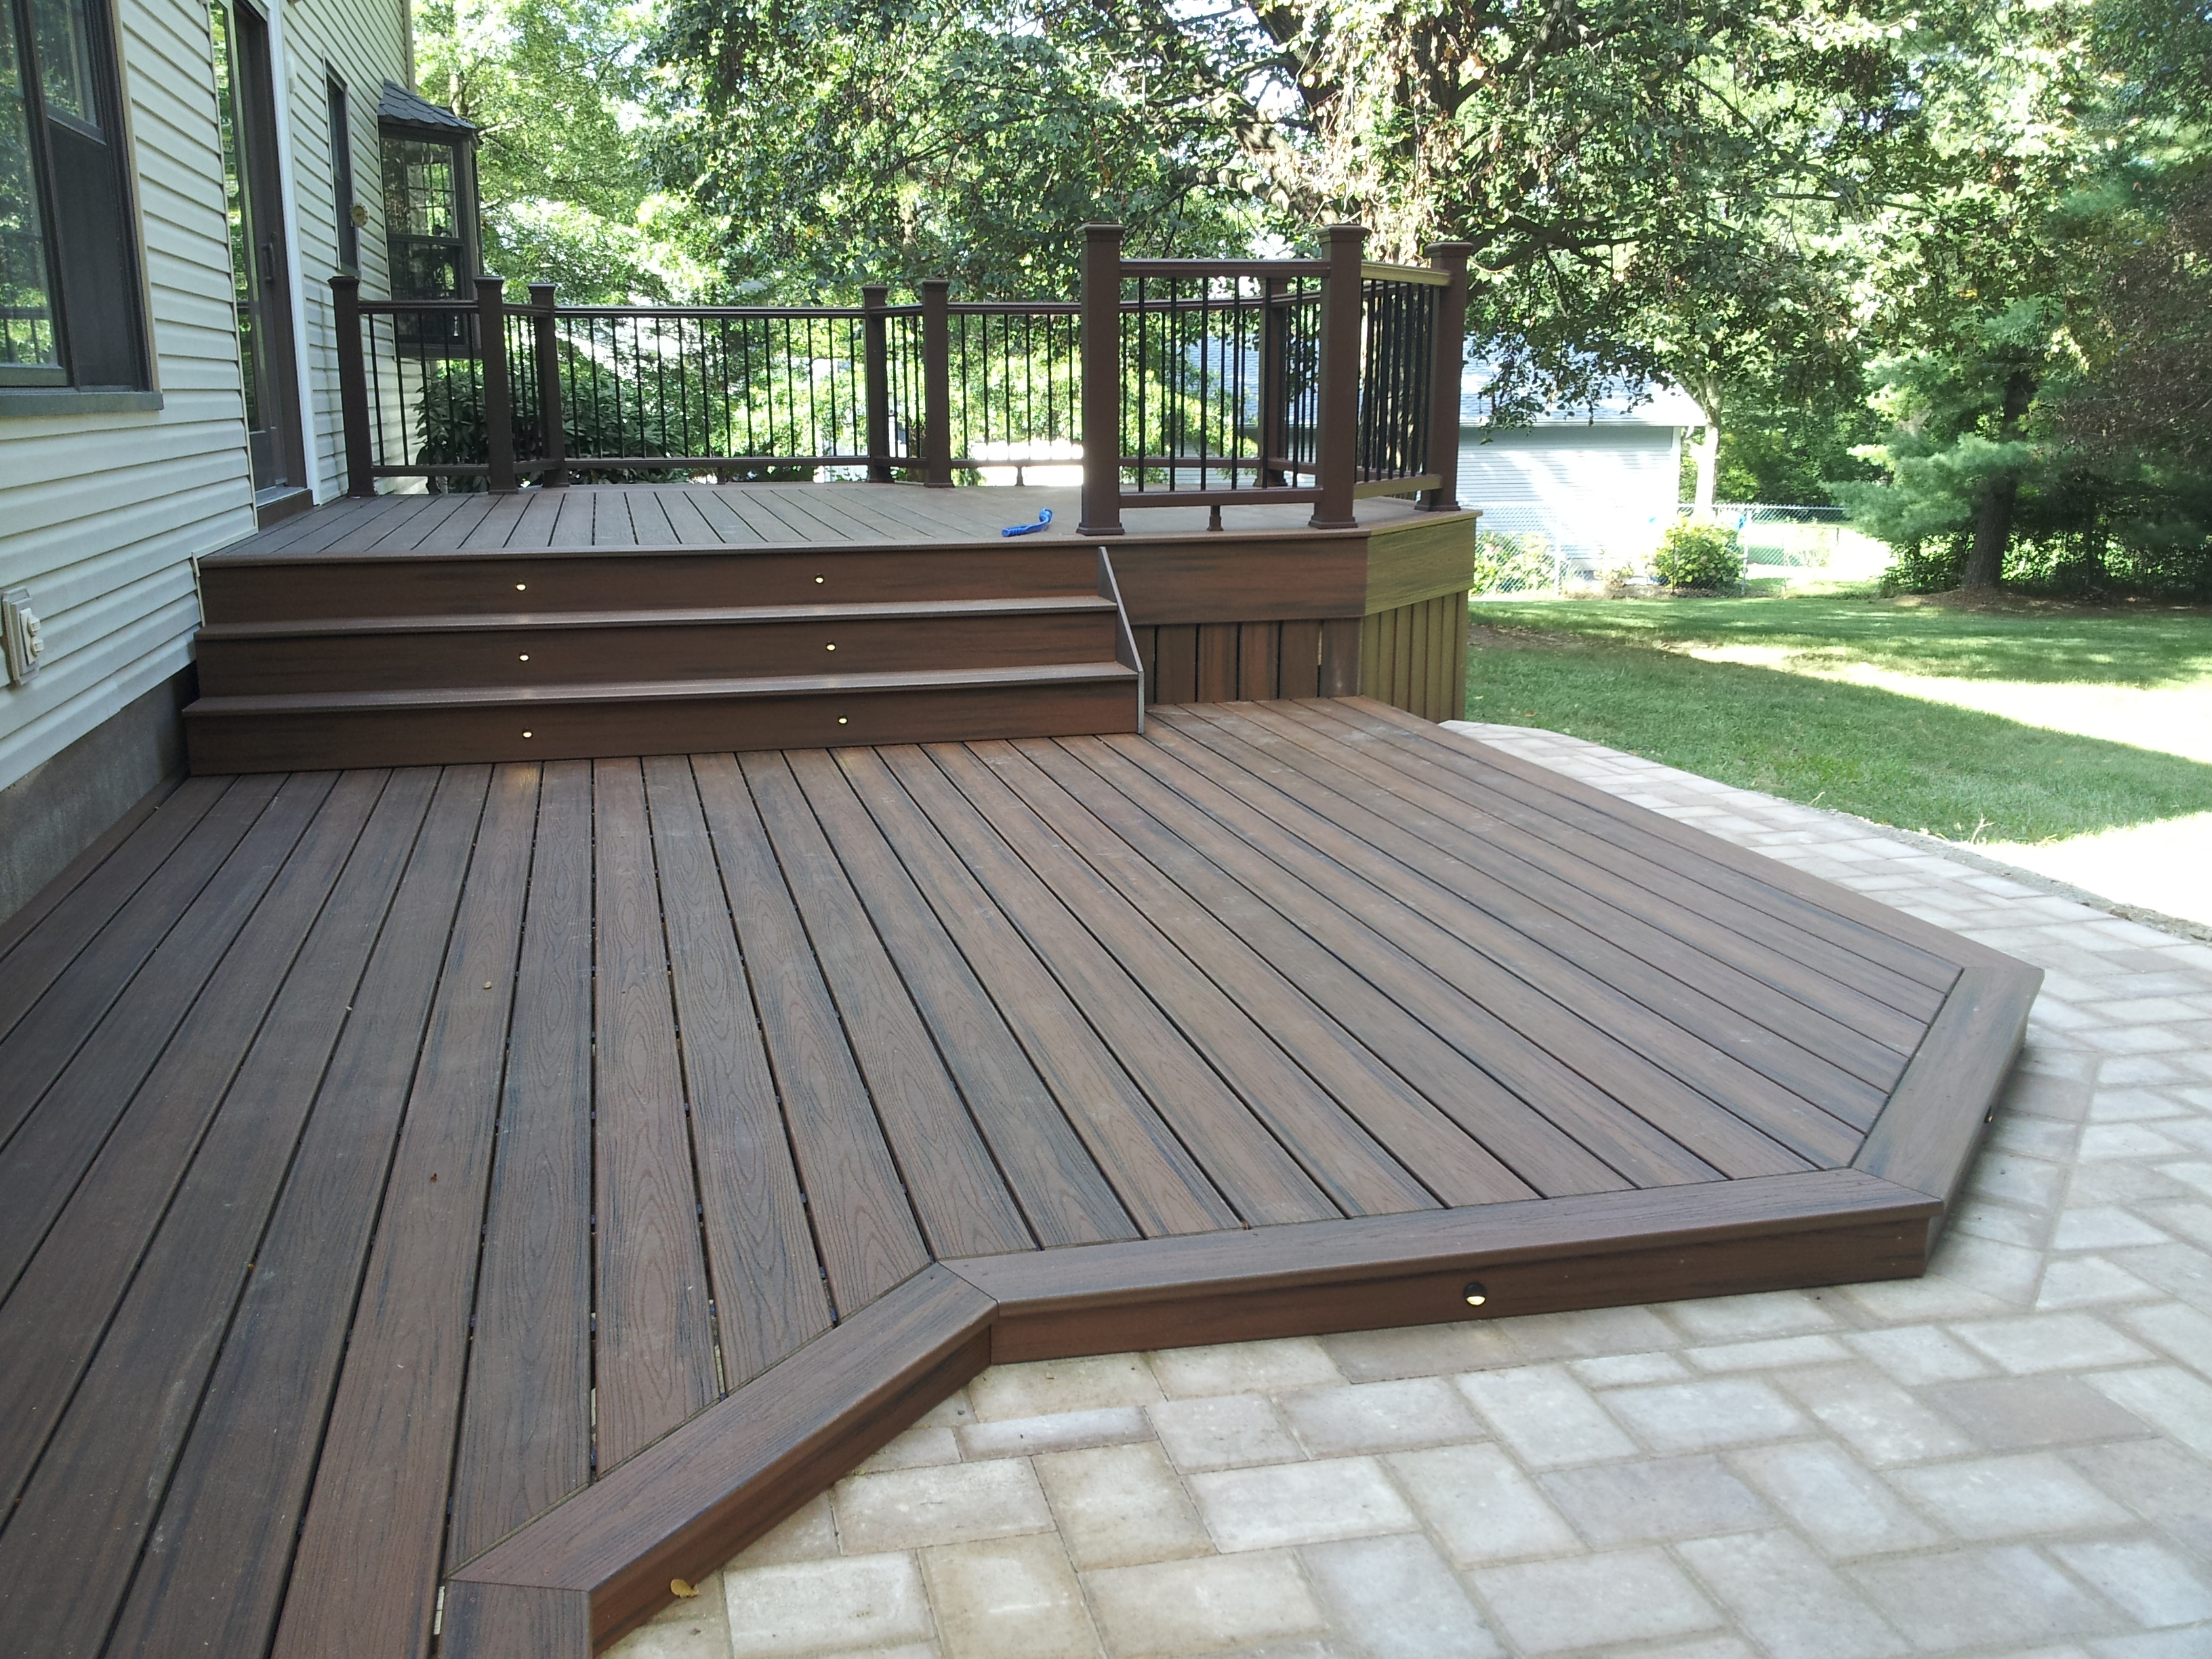 Blog hillsborough fencing sheffield ideas for your - Deck ideas for home ...